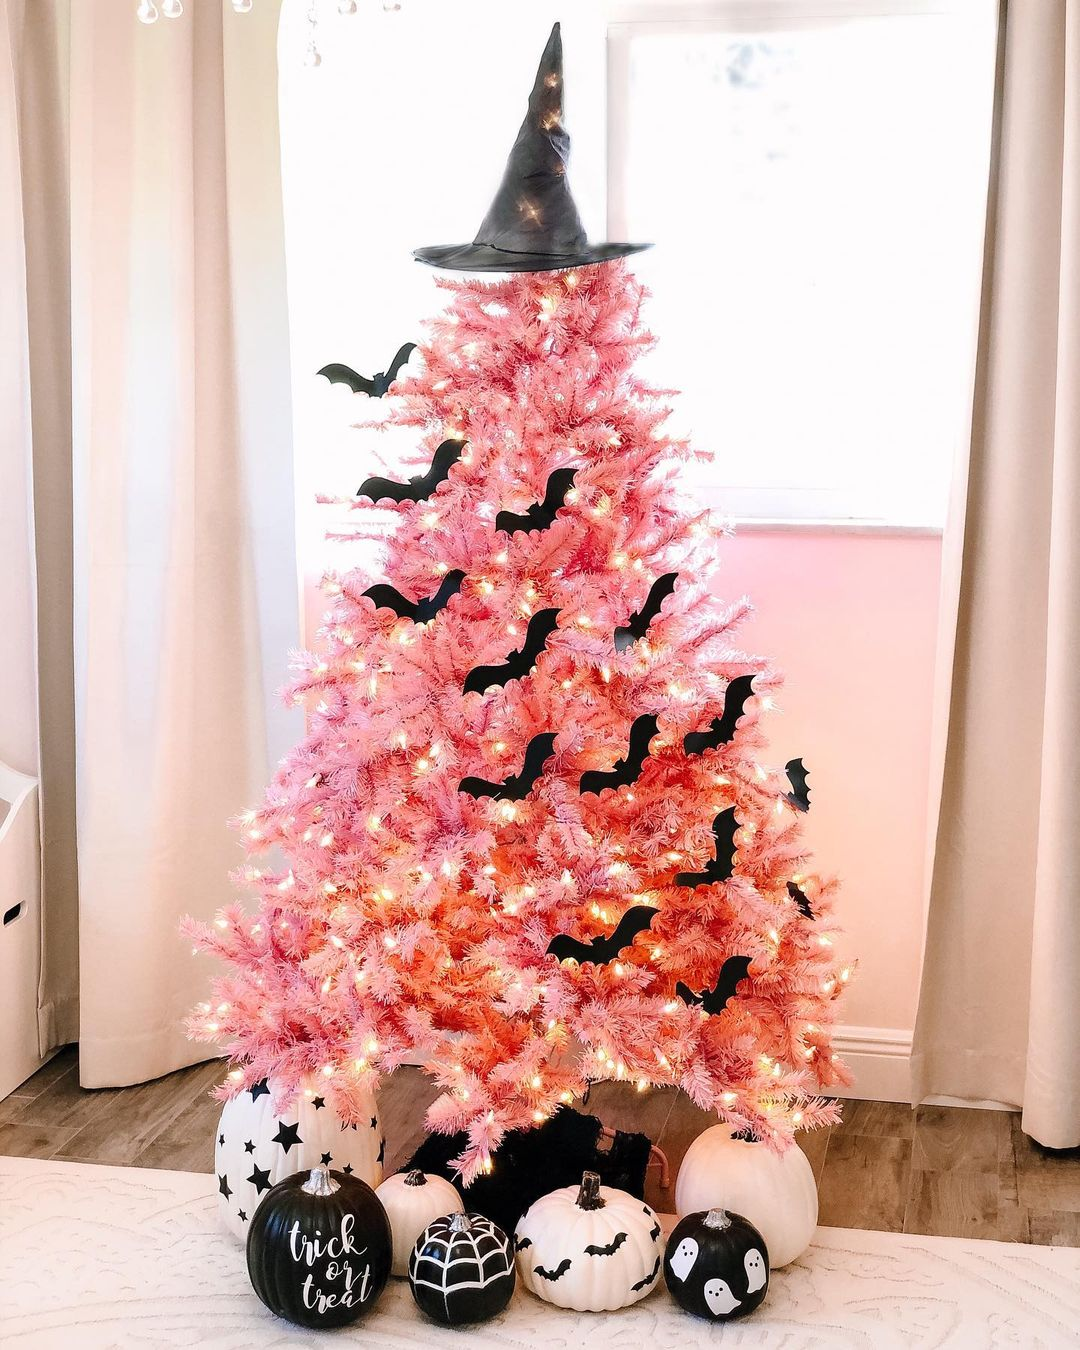 Cute pink Halloween tree with bat decorations